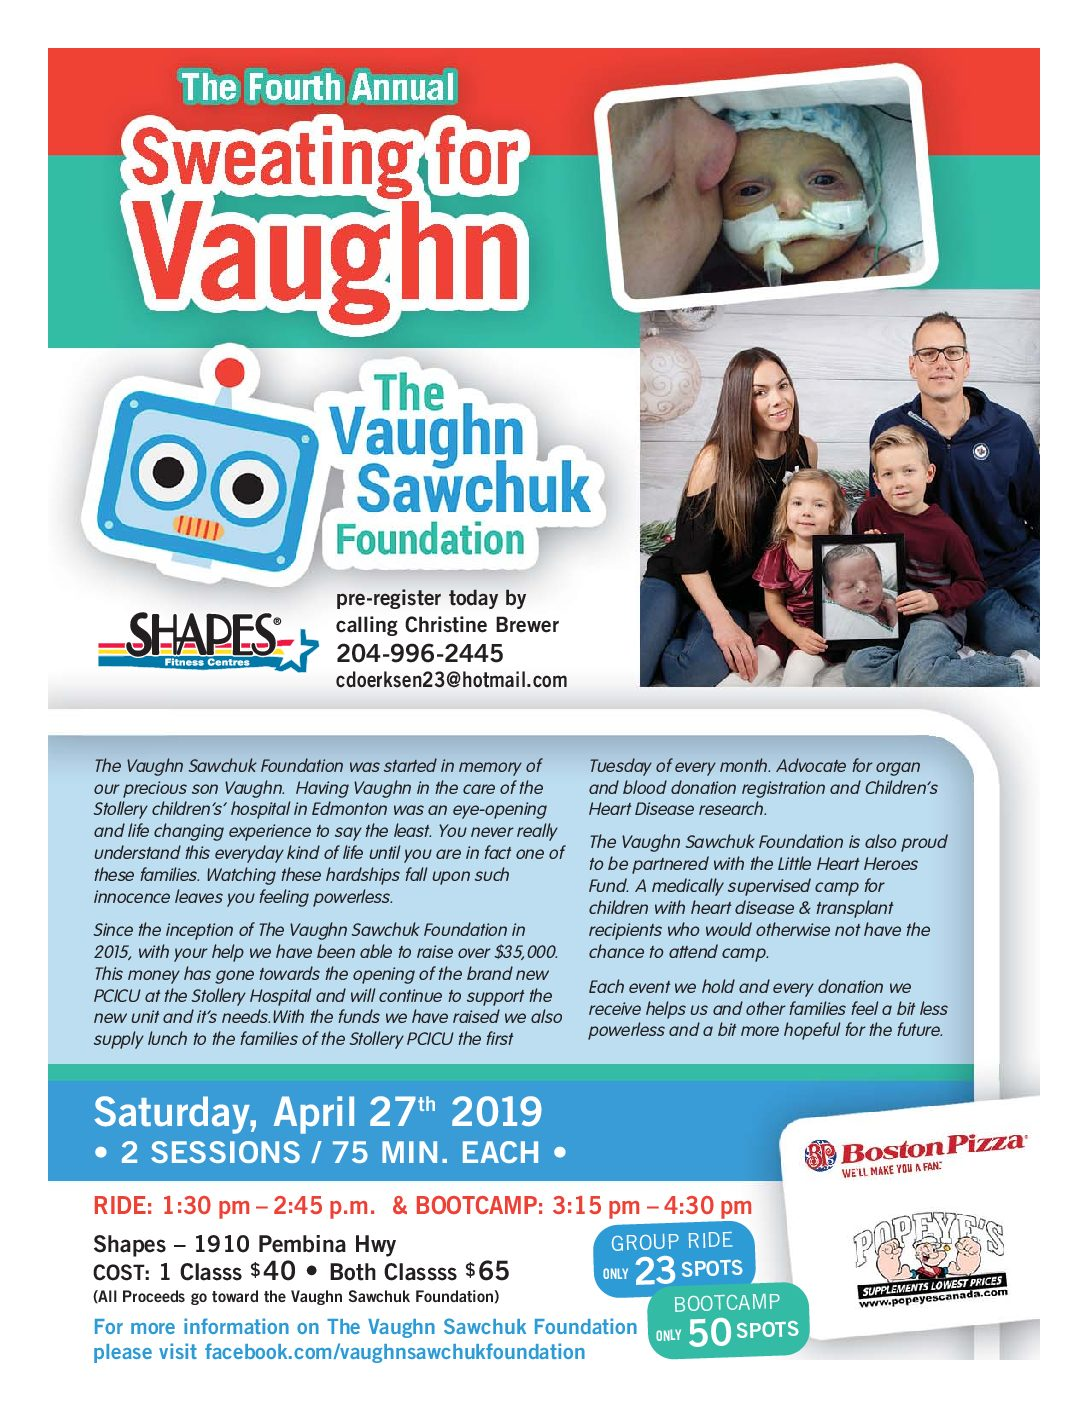 4th Annual Sweating for Vaughn!